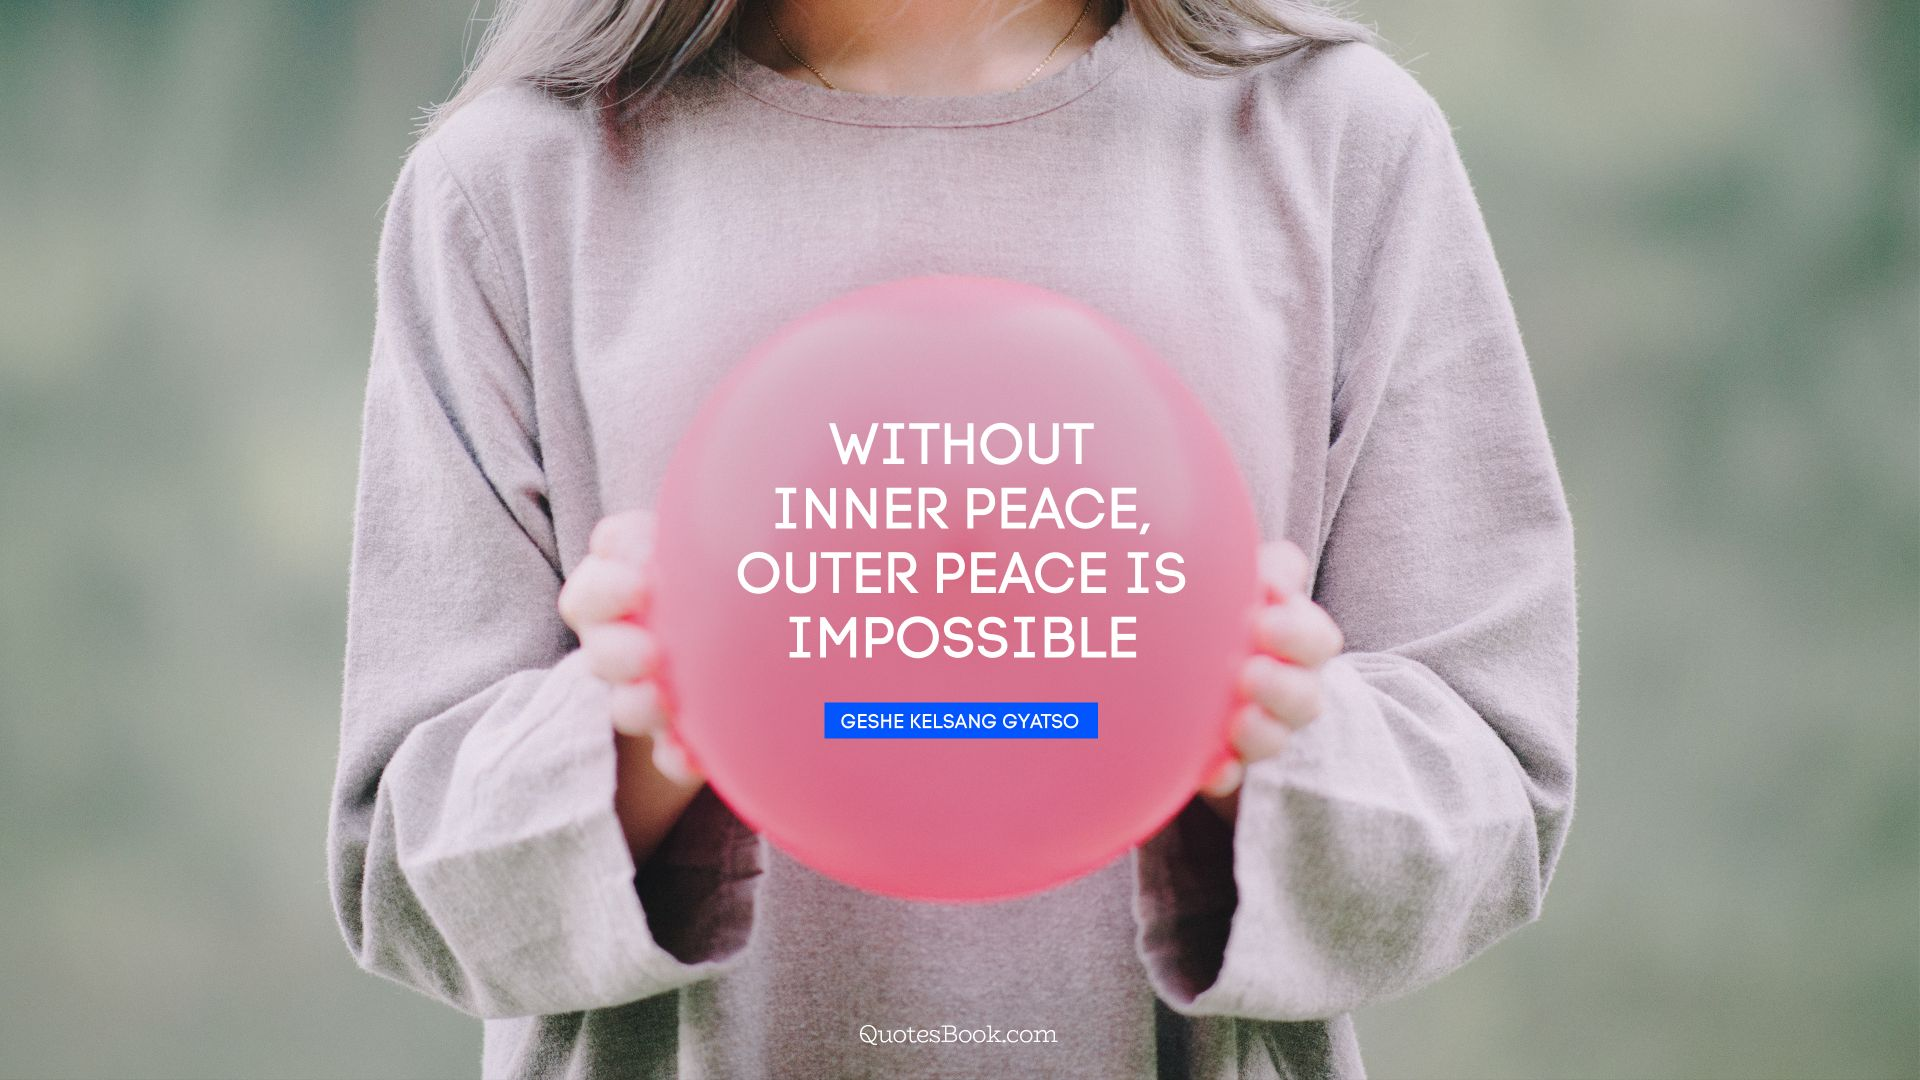 Without inner peace, outer peace is impossible. - Quote by Geshe Kelsang Gyatso